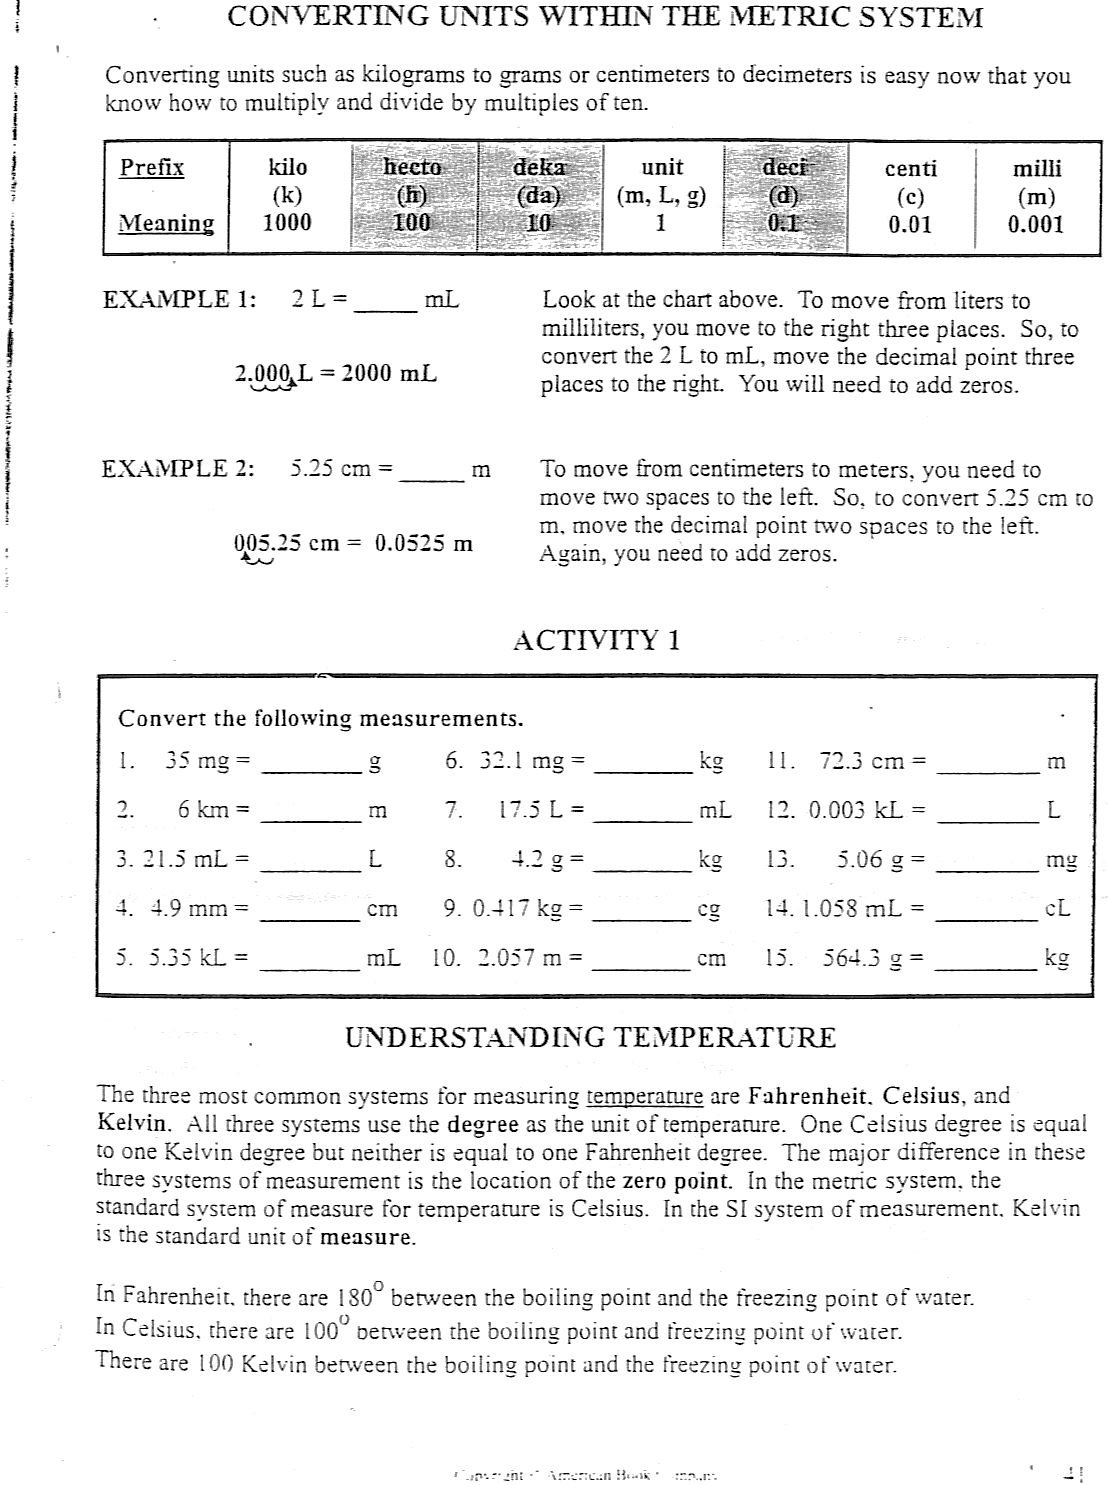 30 Metric System Worksheet High School